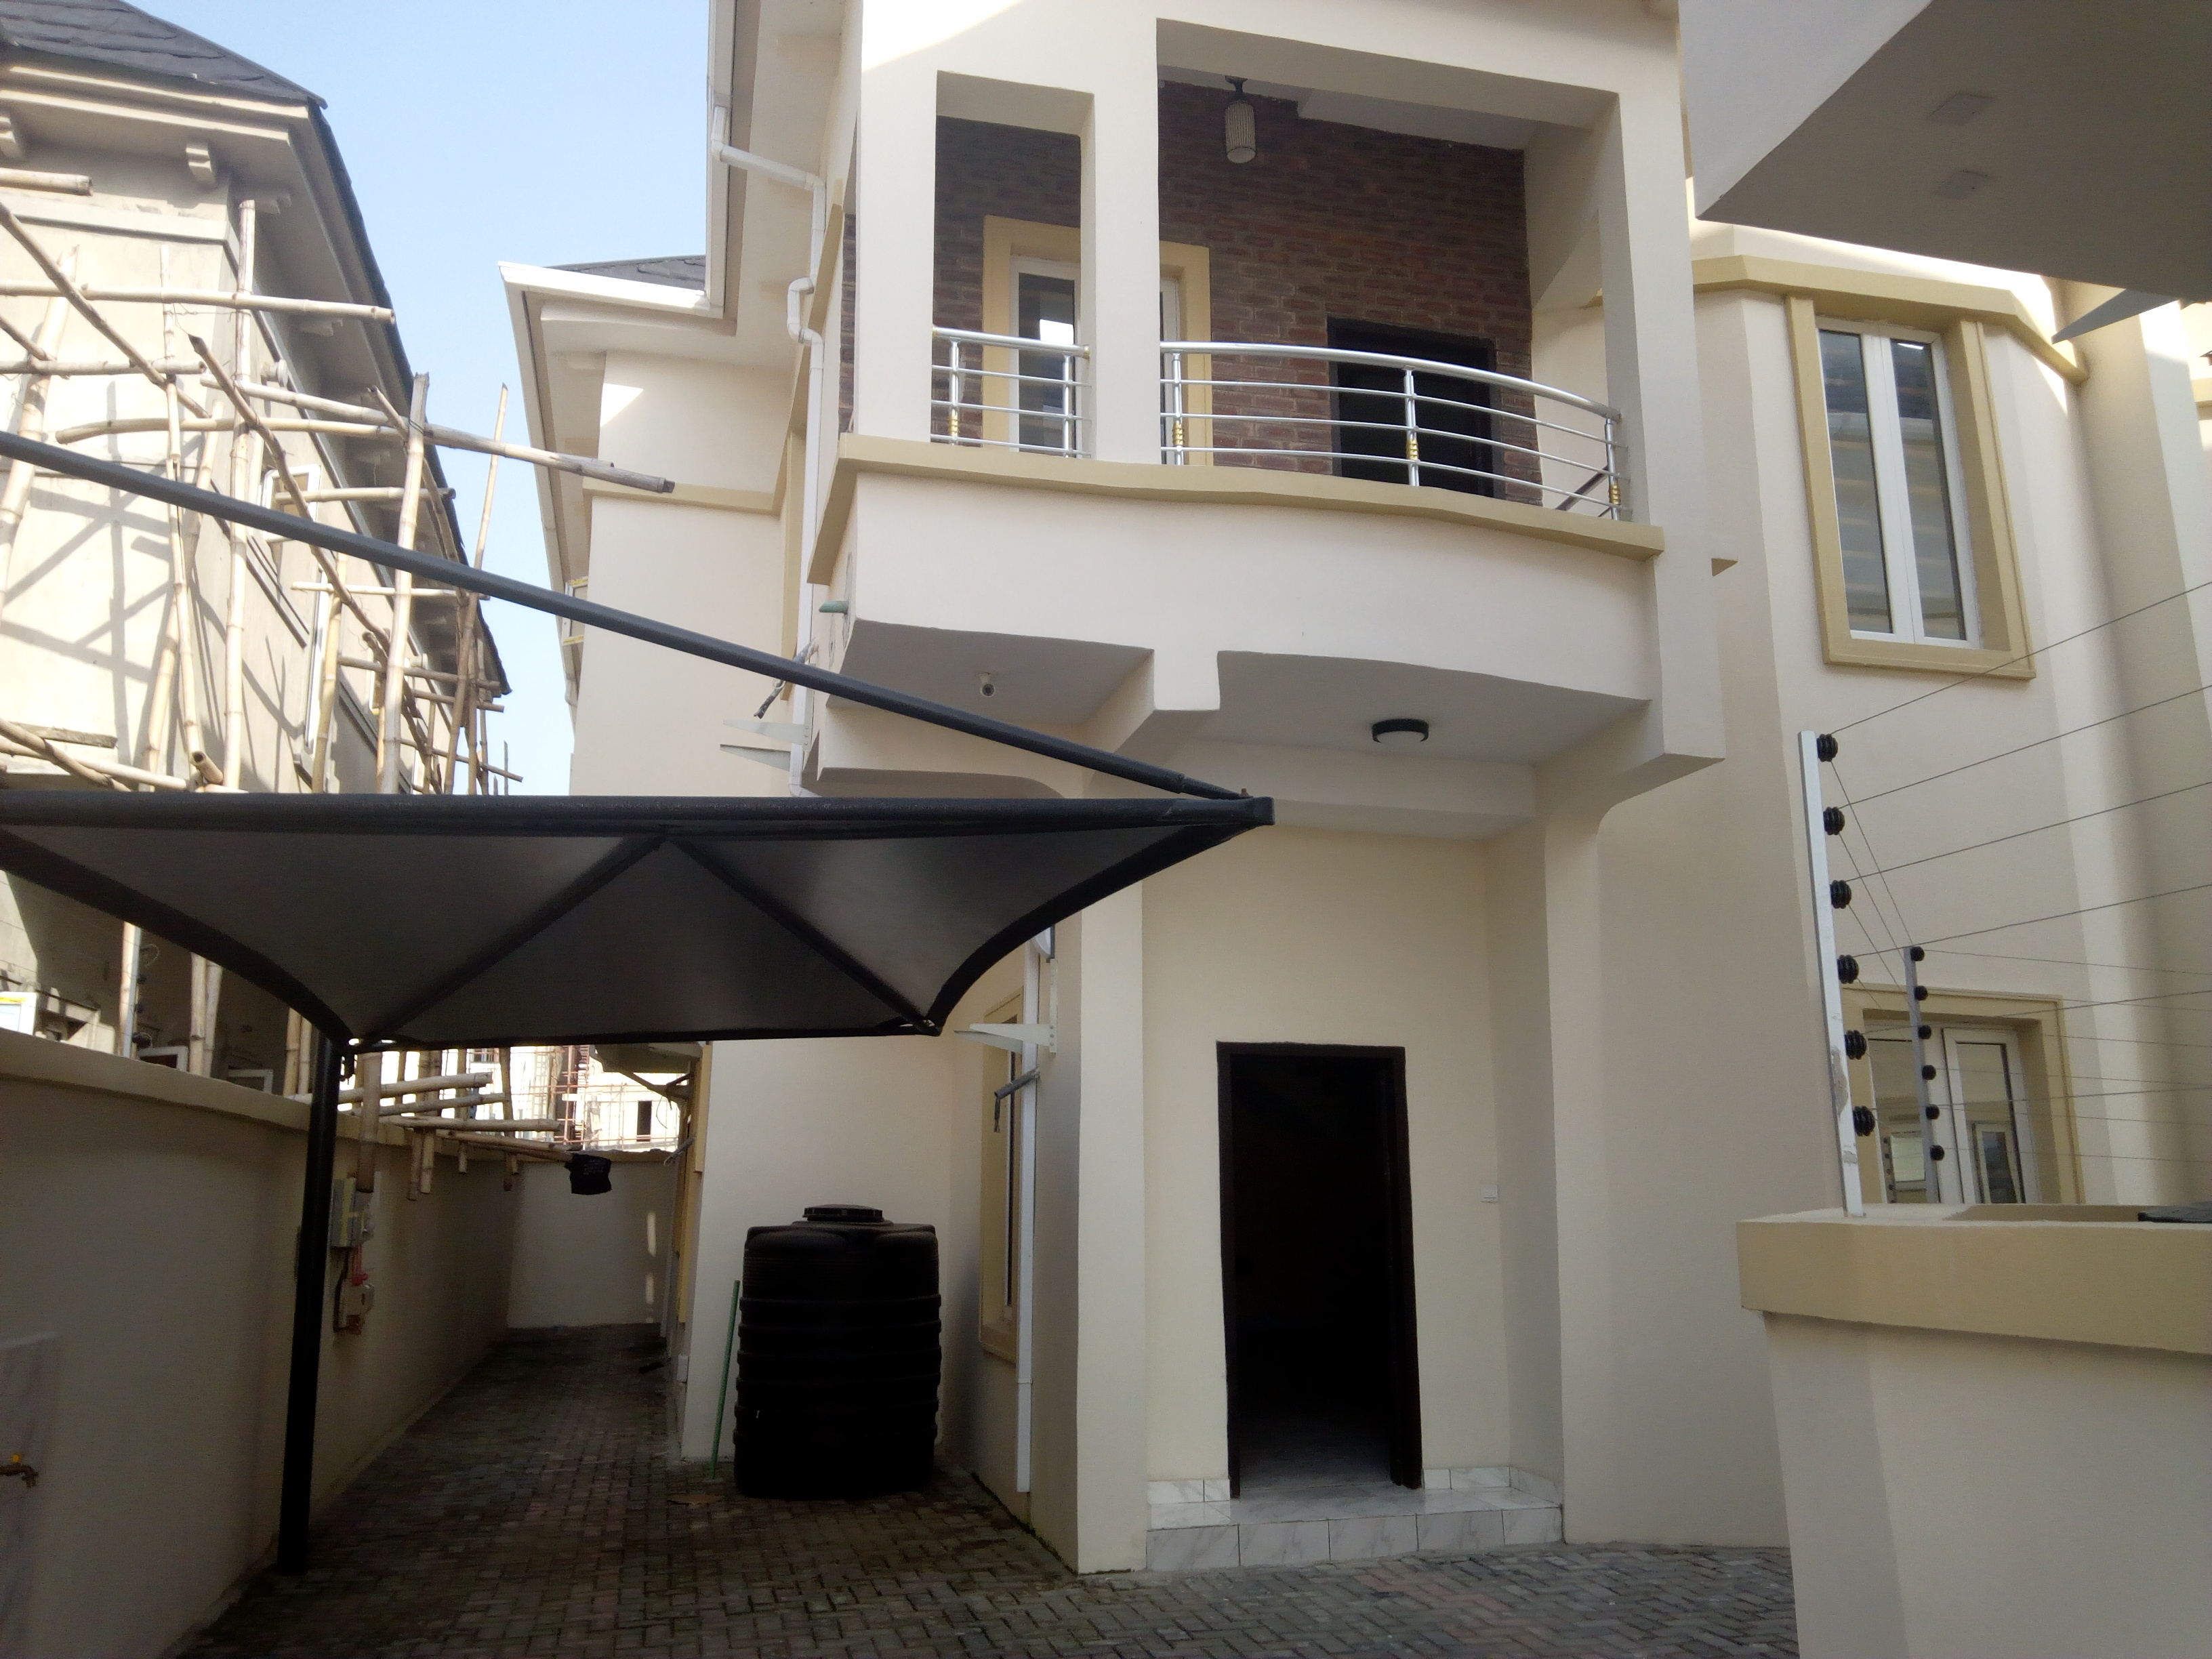 5 bedroom detached house for sale at Chevy view via chevron ₦85M